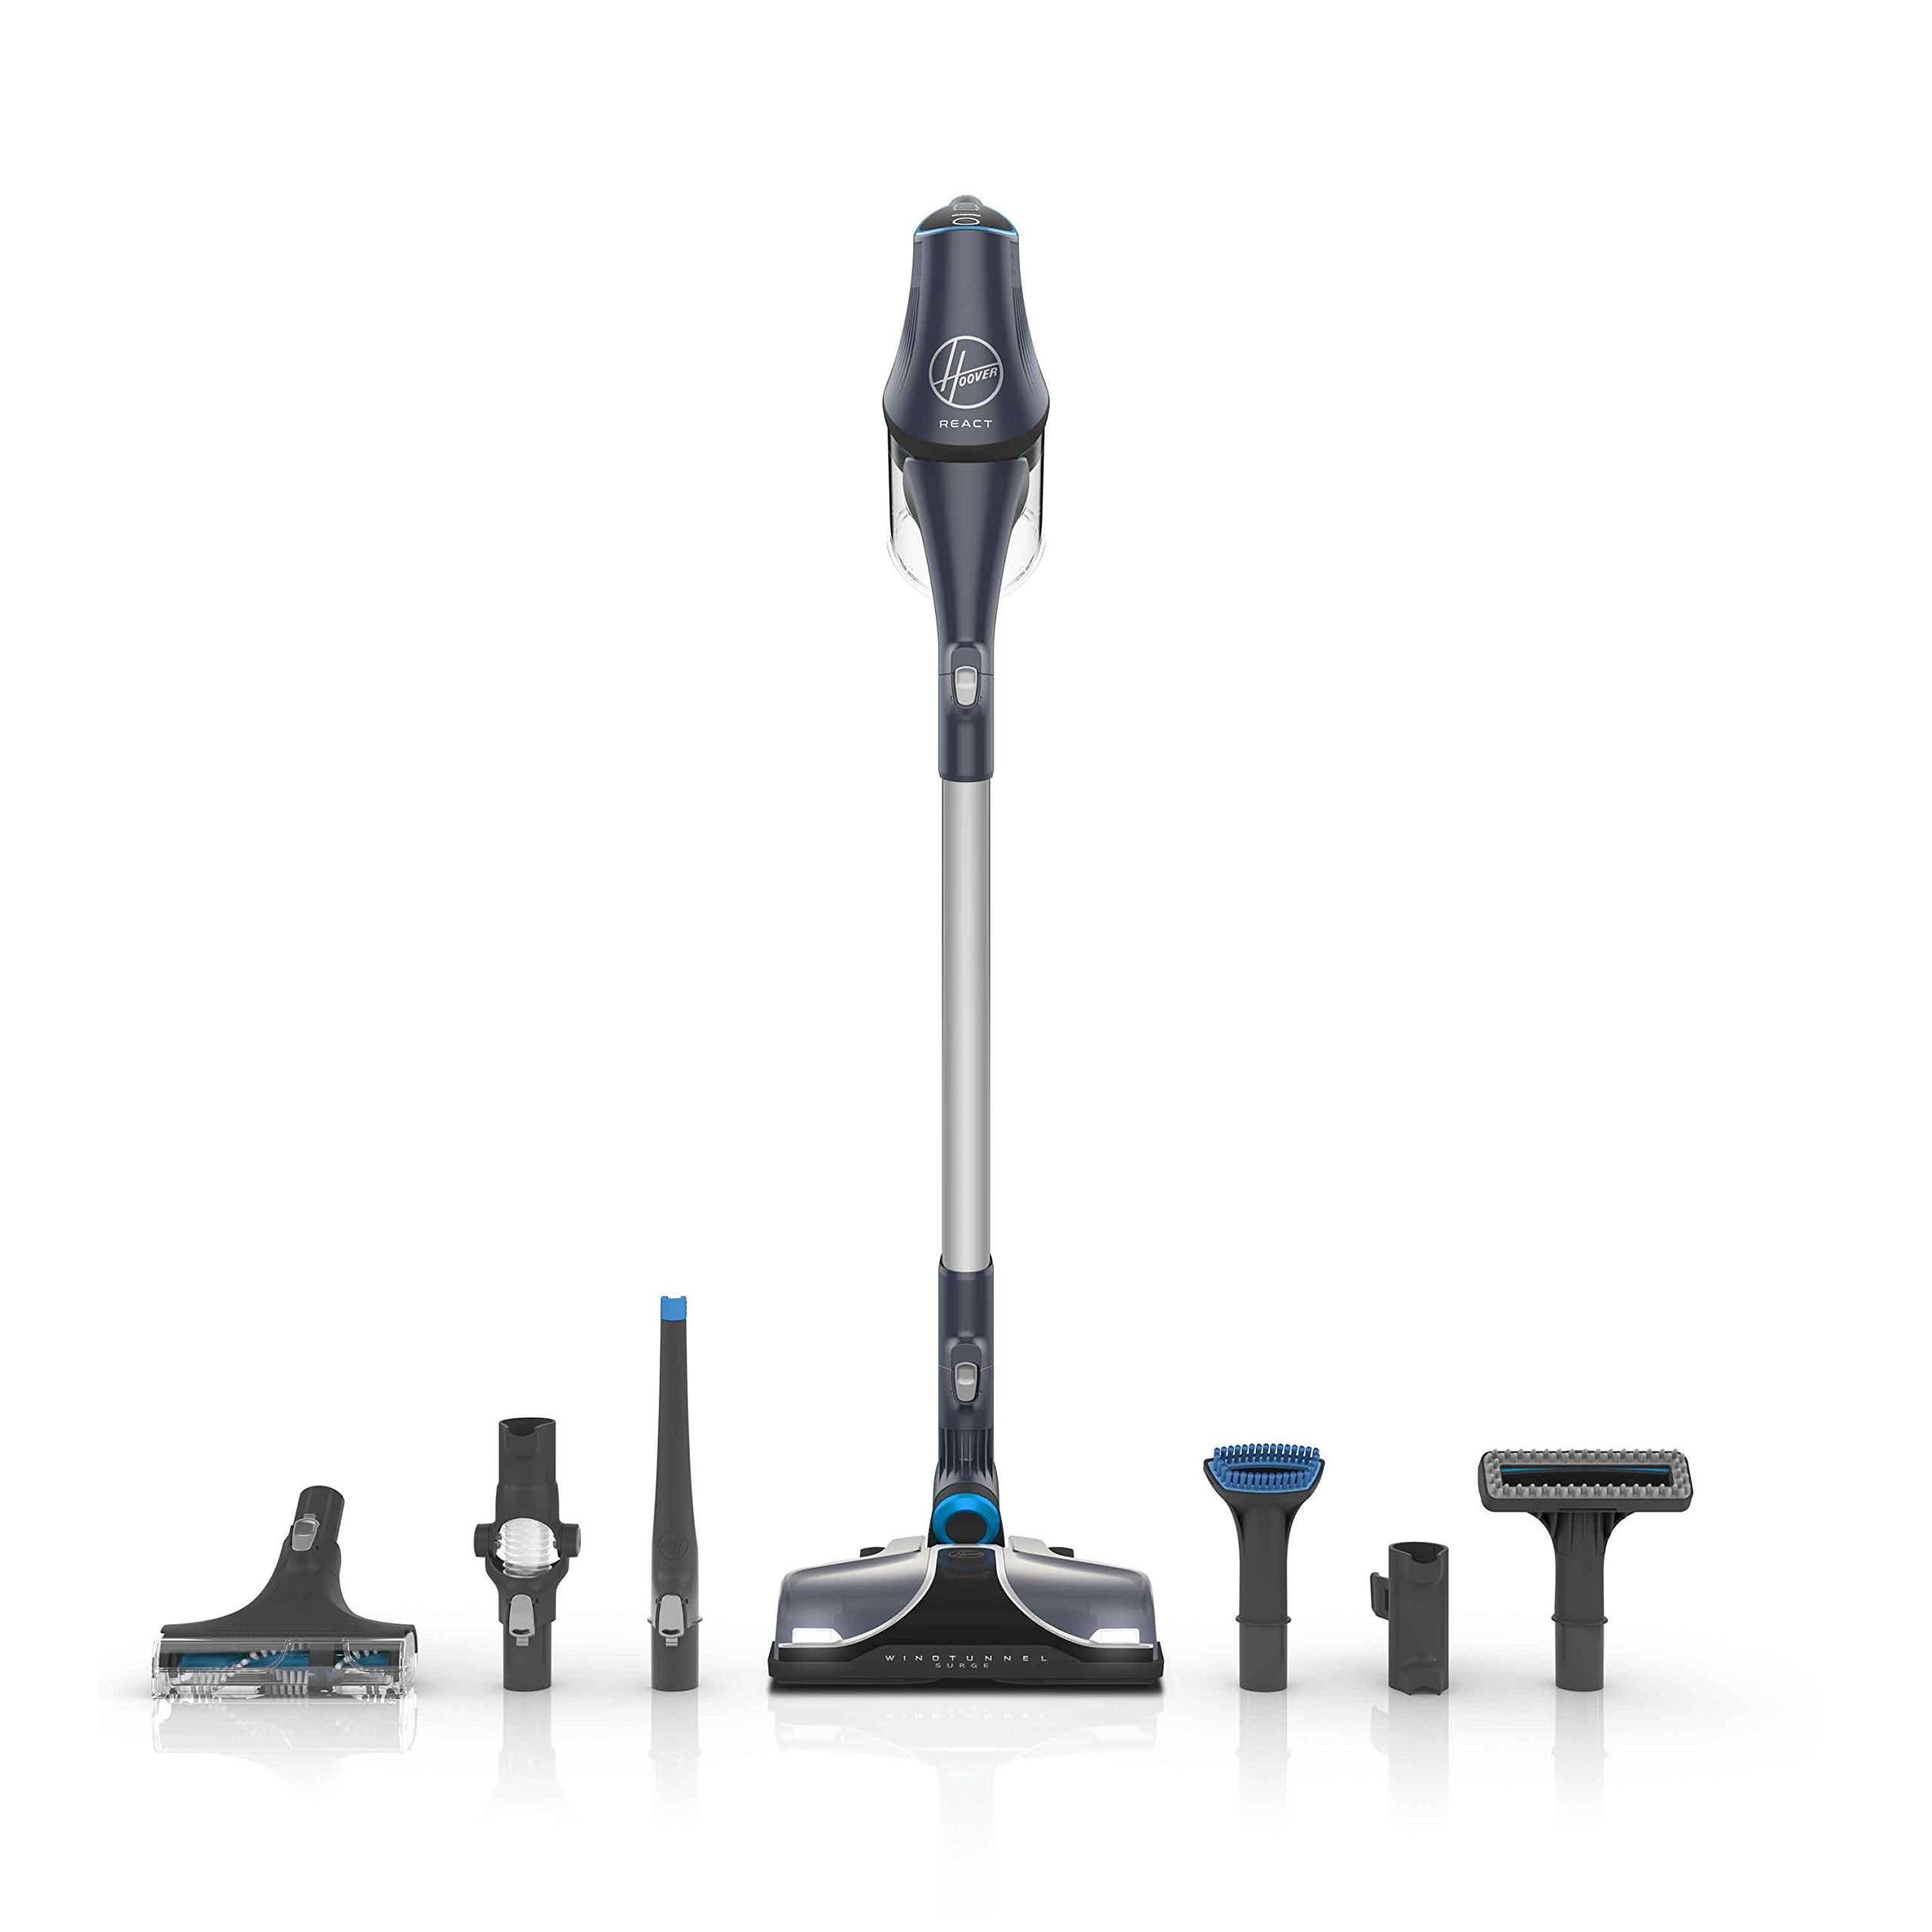 Hoover REACT Whole Home Cordless Pet Stick Vacuum Cleaner, BH53220